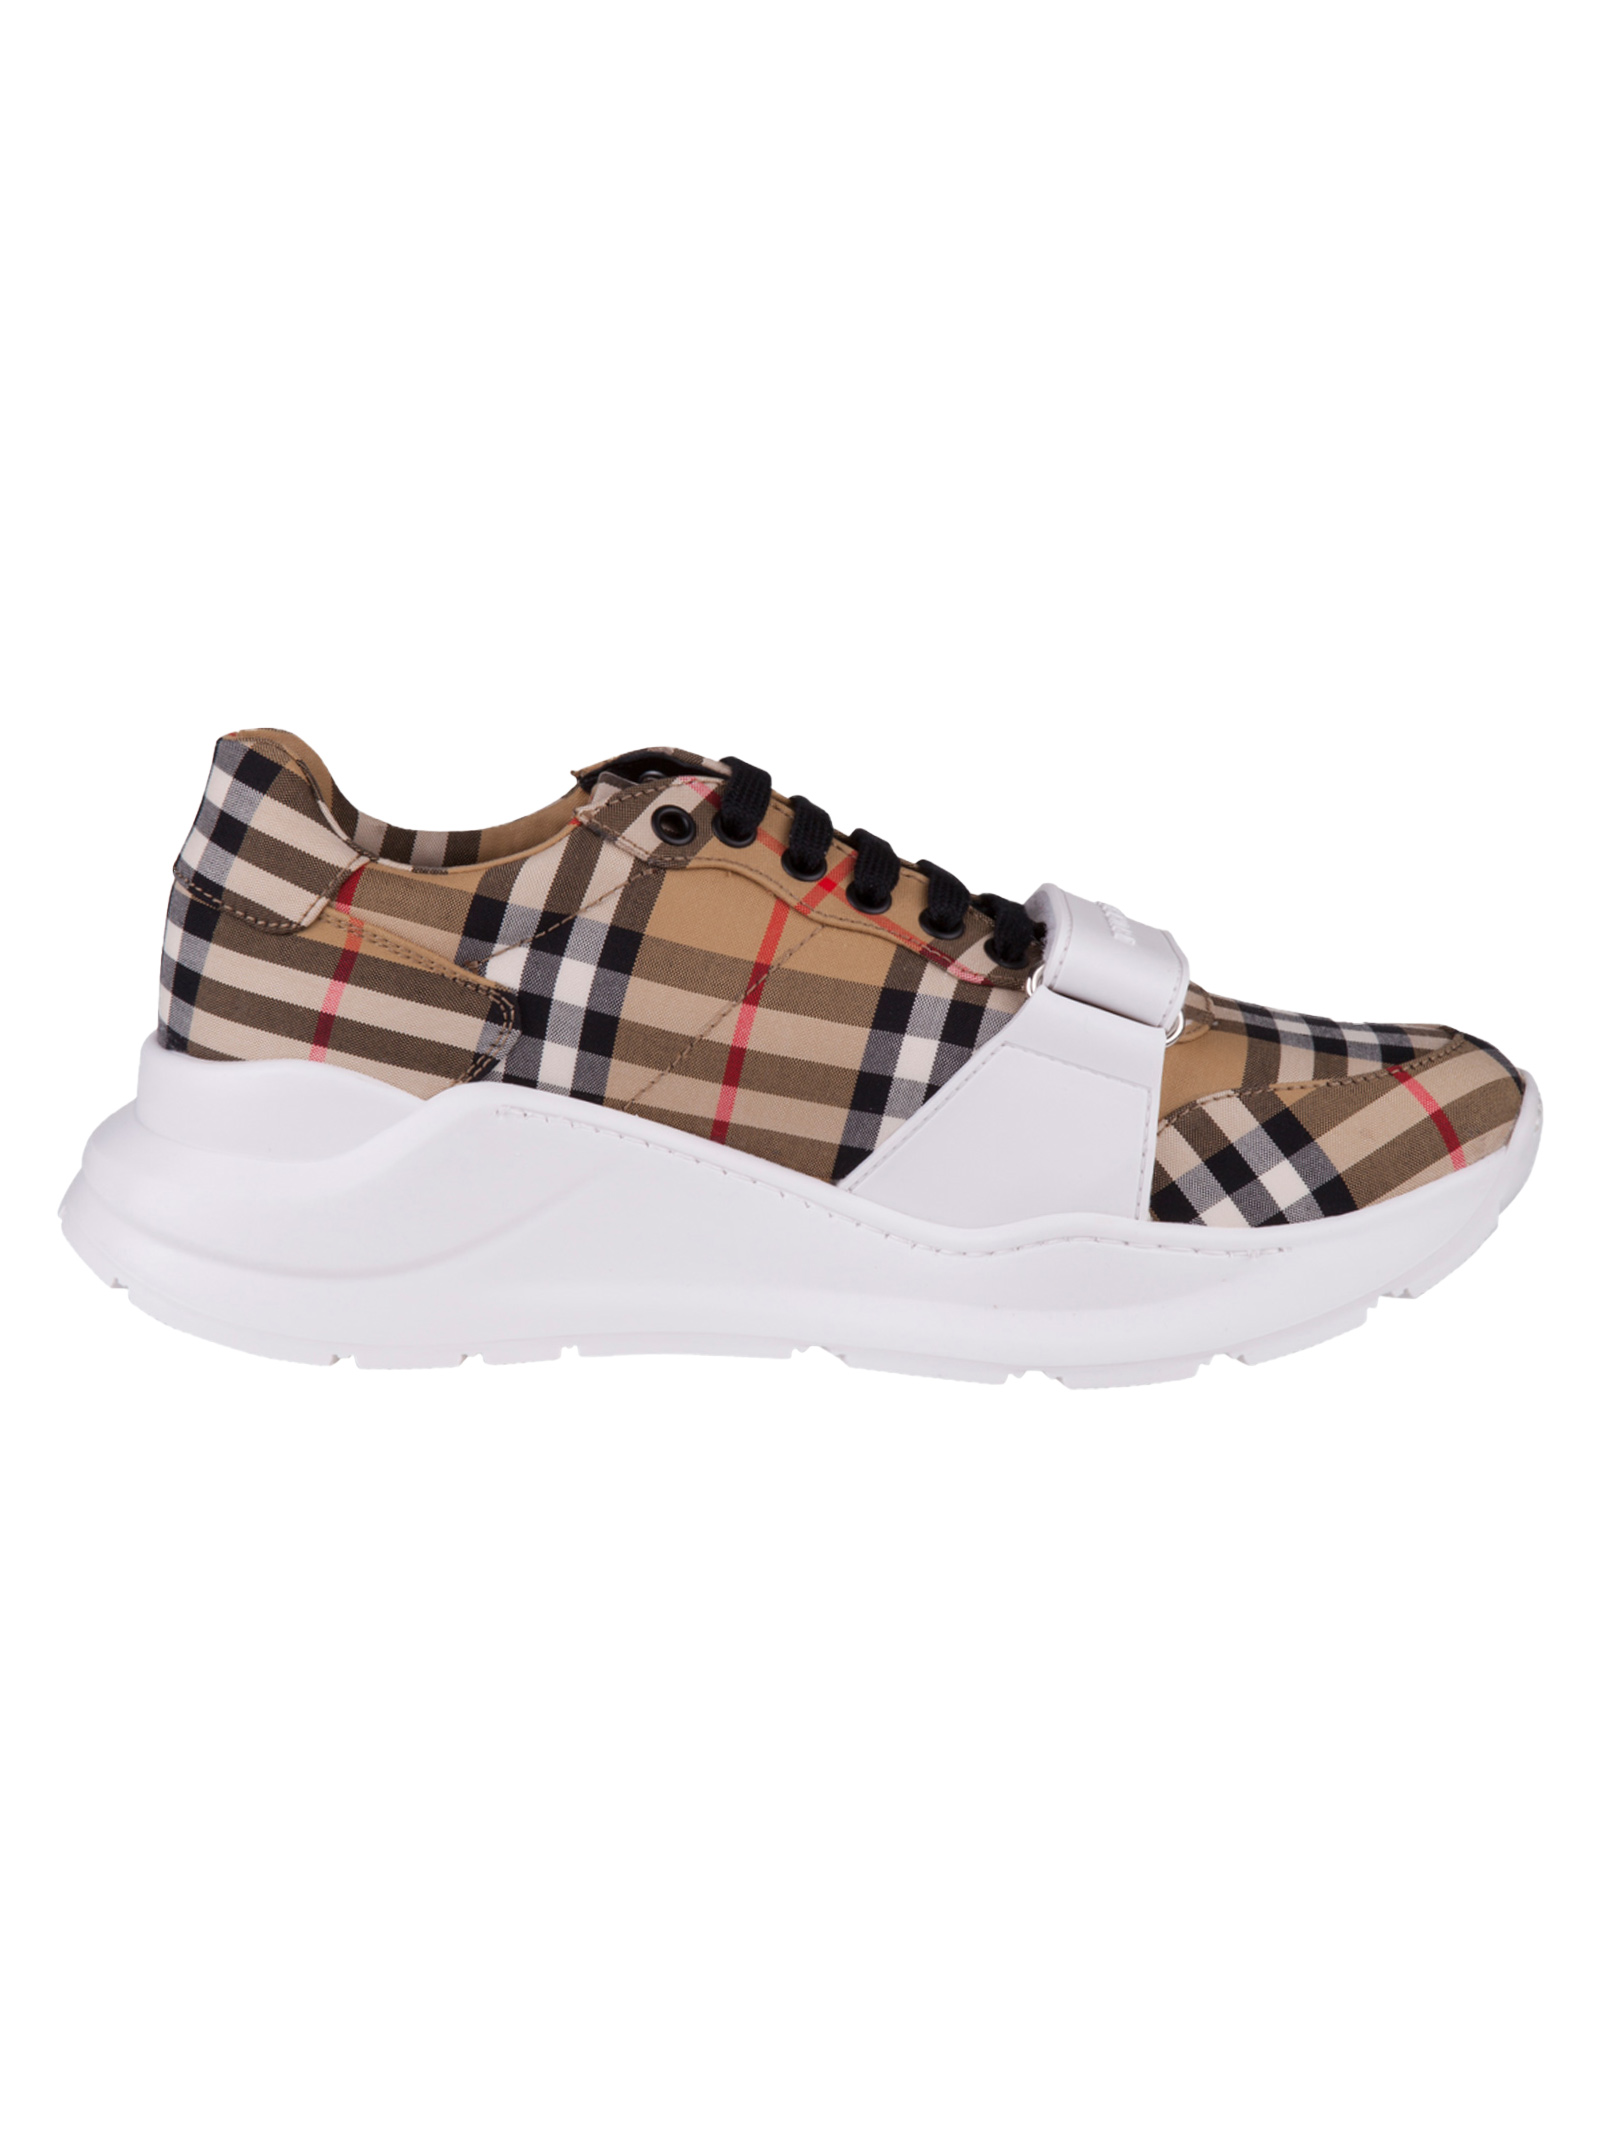 e70f10d35ccc Bruberry sneakers BURBERRY   1718629338   4078689YELLOW